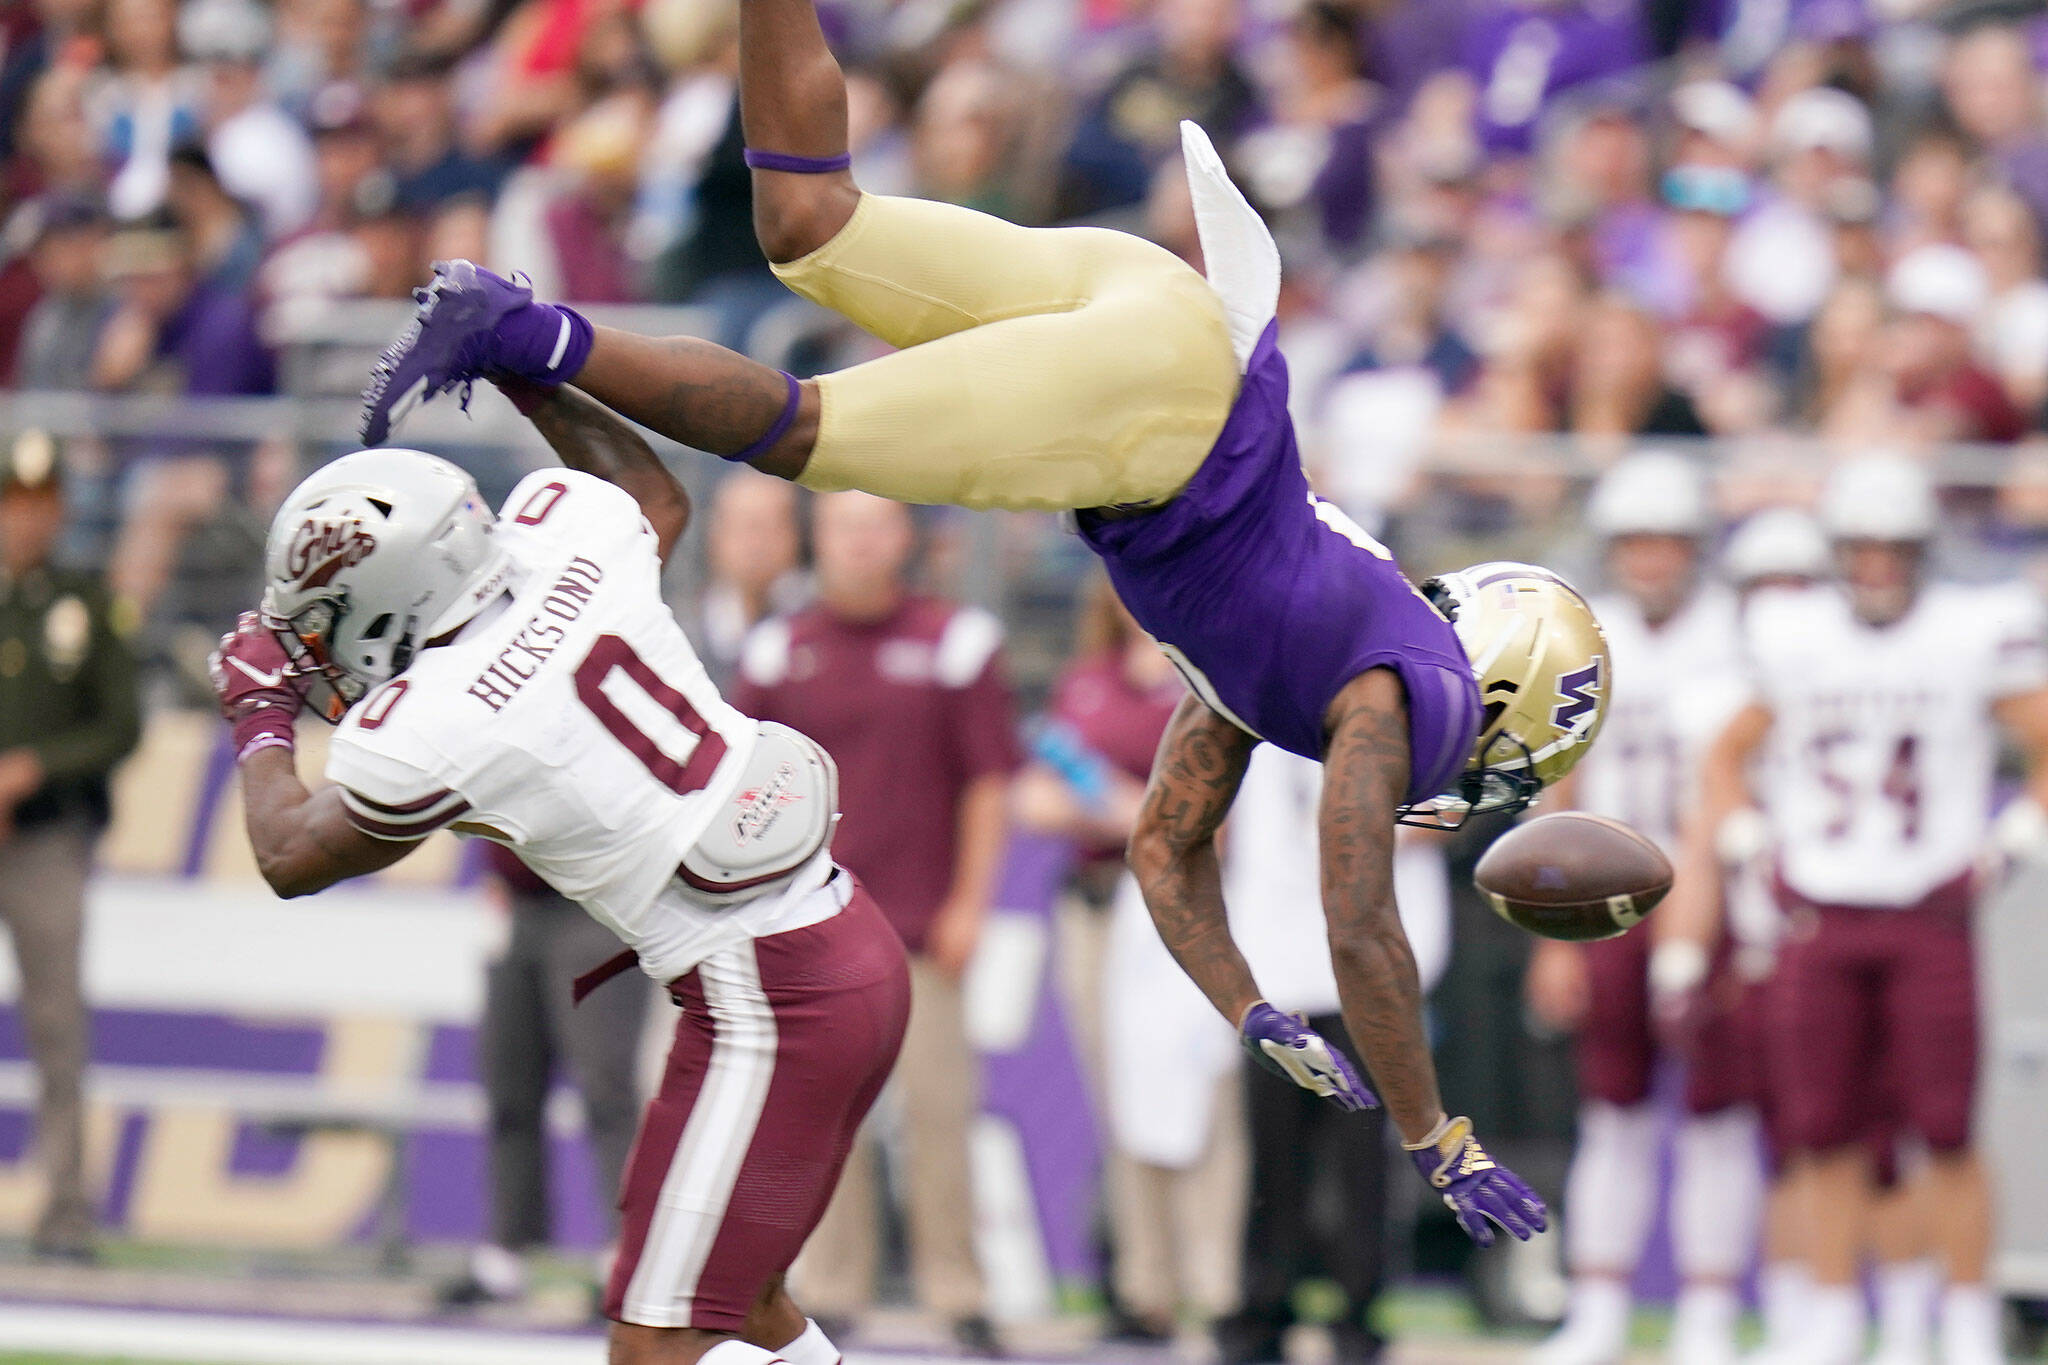 Montana's Omar Hicks Onu (left) upends and breaks up a pass intended for Washington's Giles Jackson during the first half of a game Saturday in Seattle. (AP Photo/Elaine Thompson)